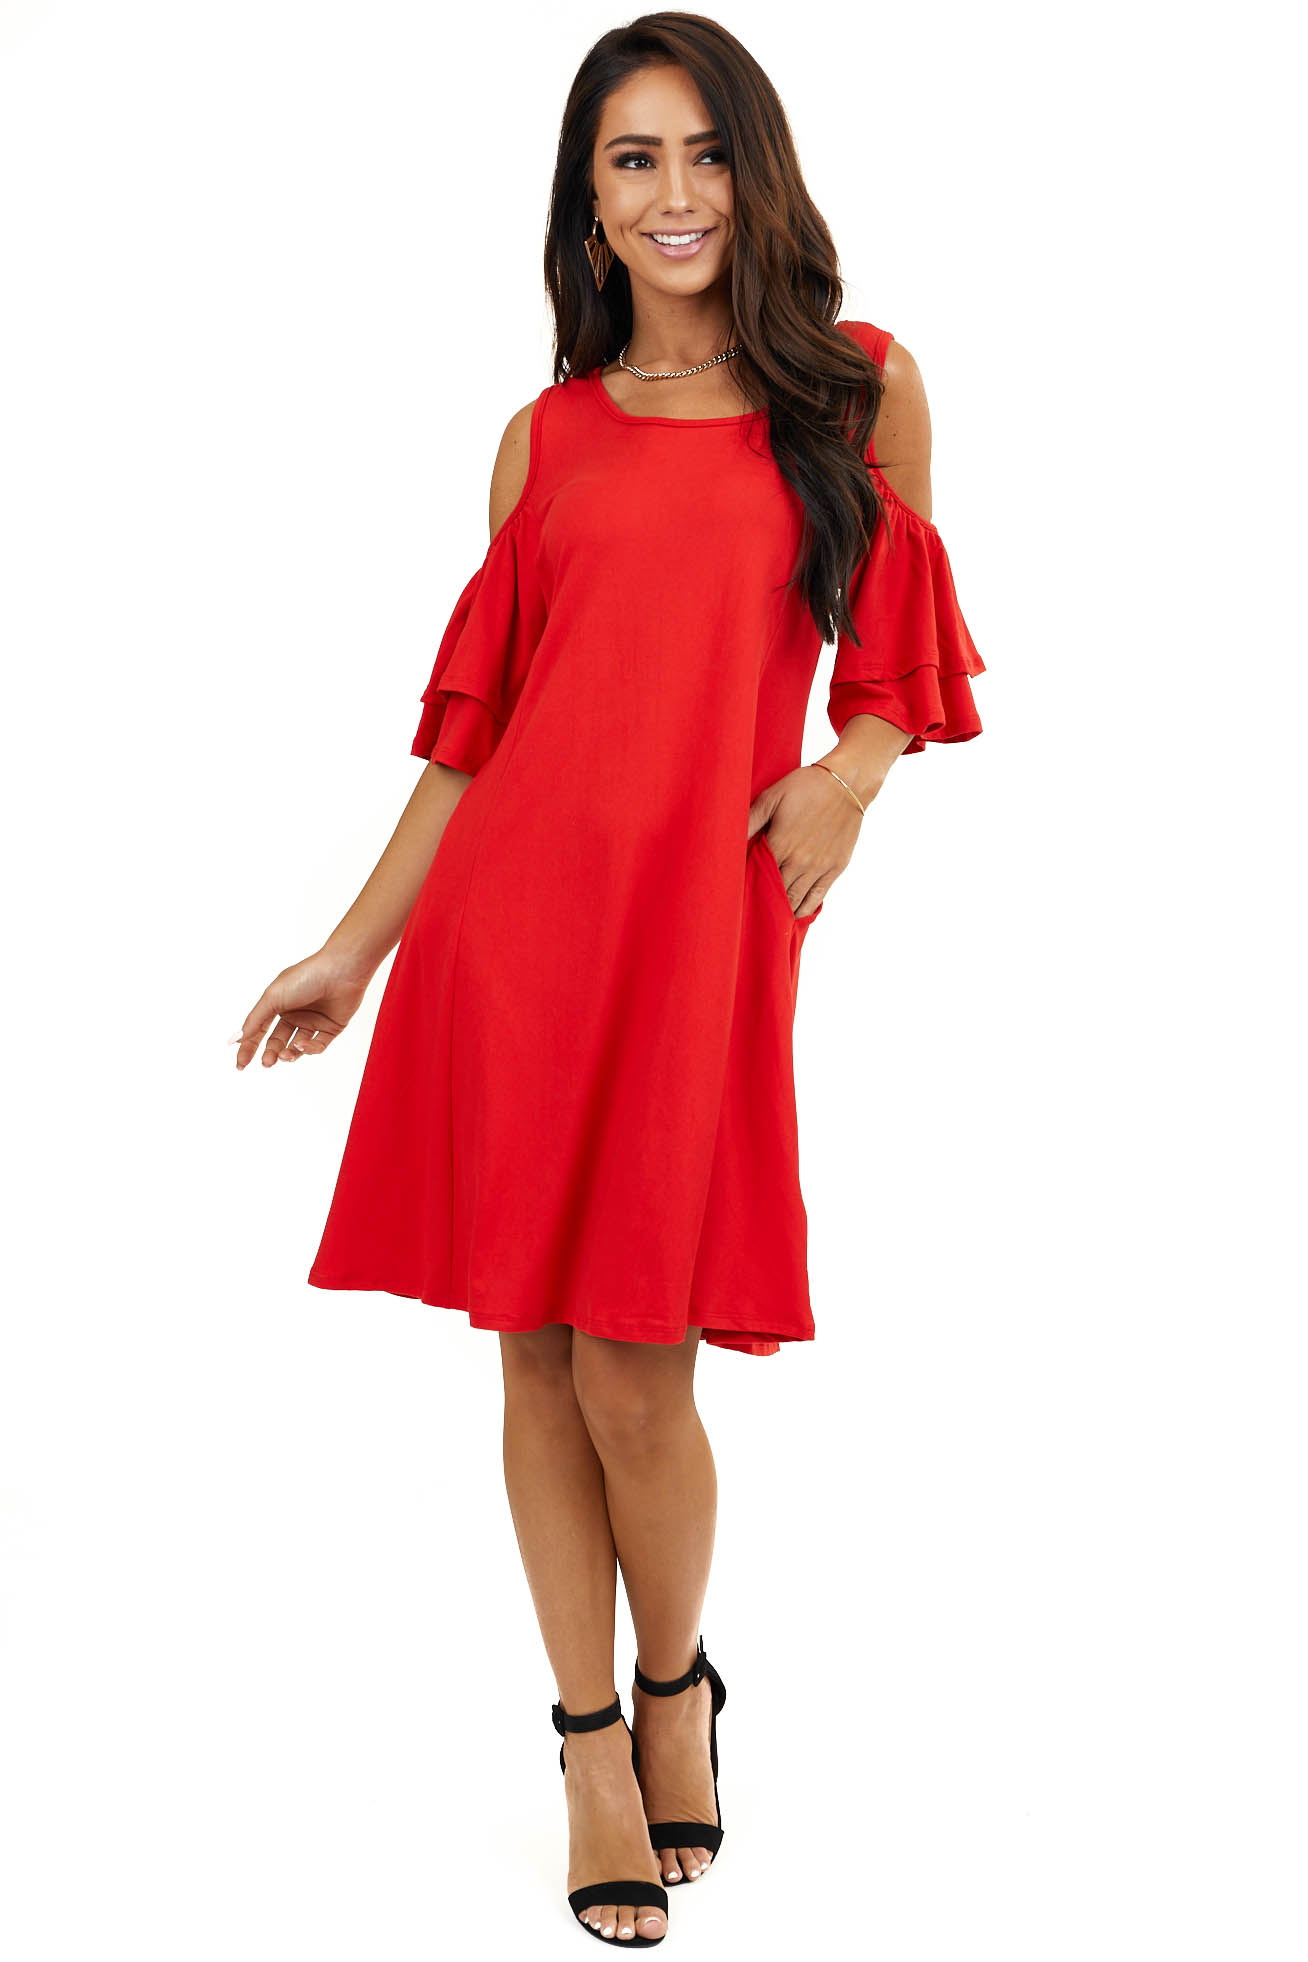 Tomato Red Cold Shoulder Soft Mini Dress with Side Pockets